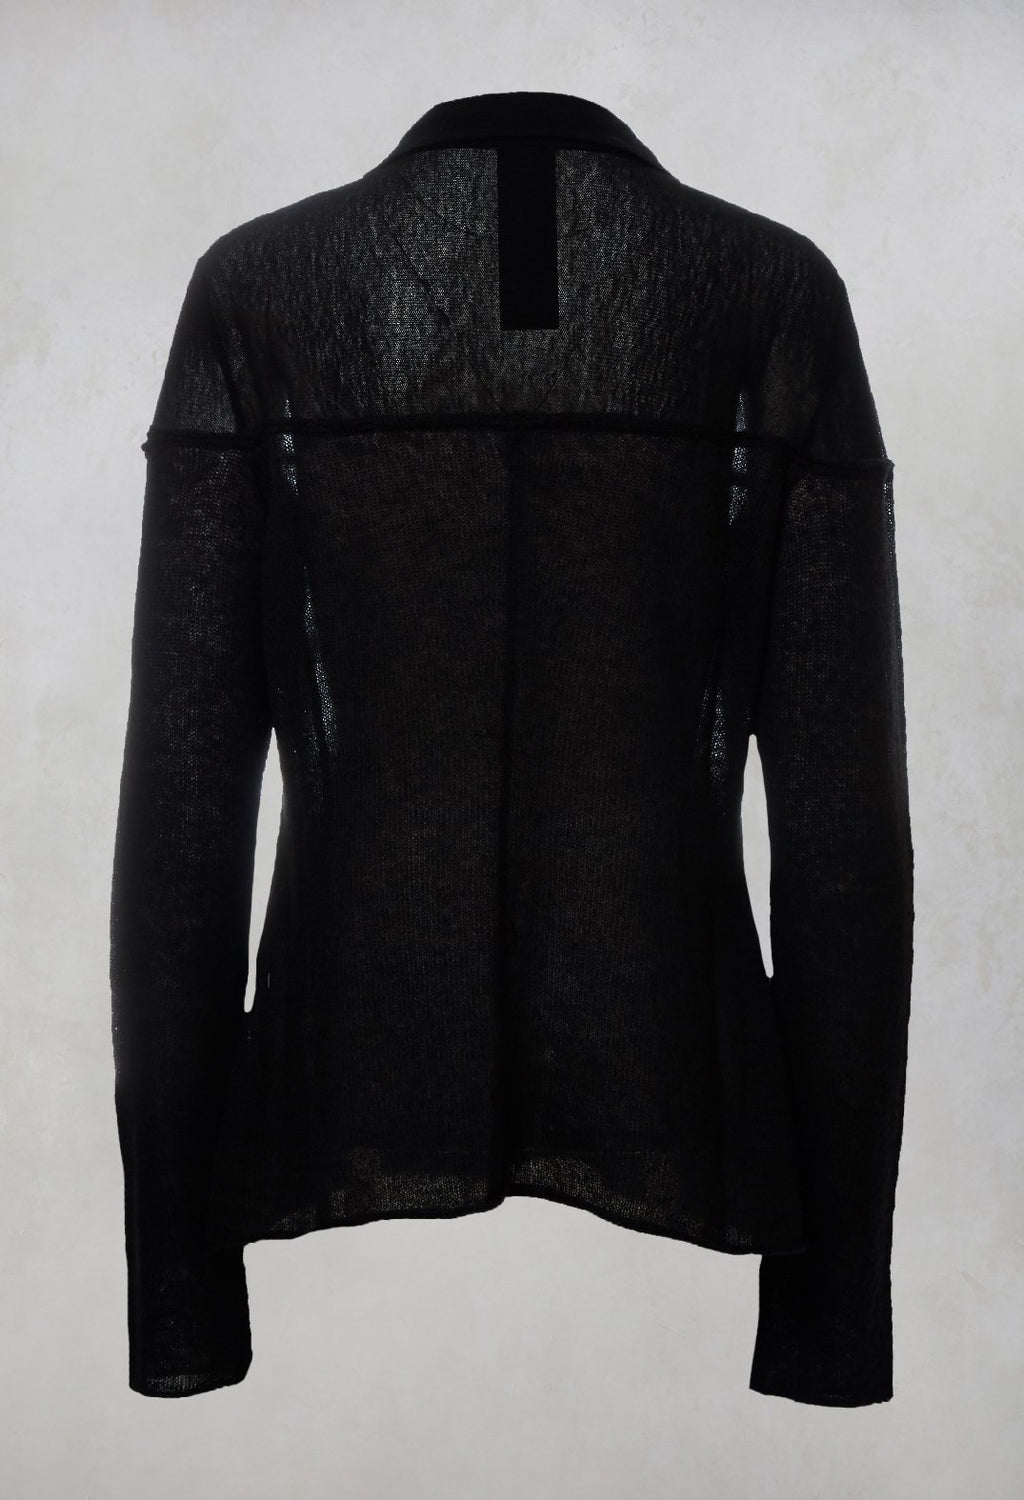 Sheer Knitted Cardigan in Black